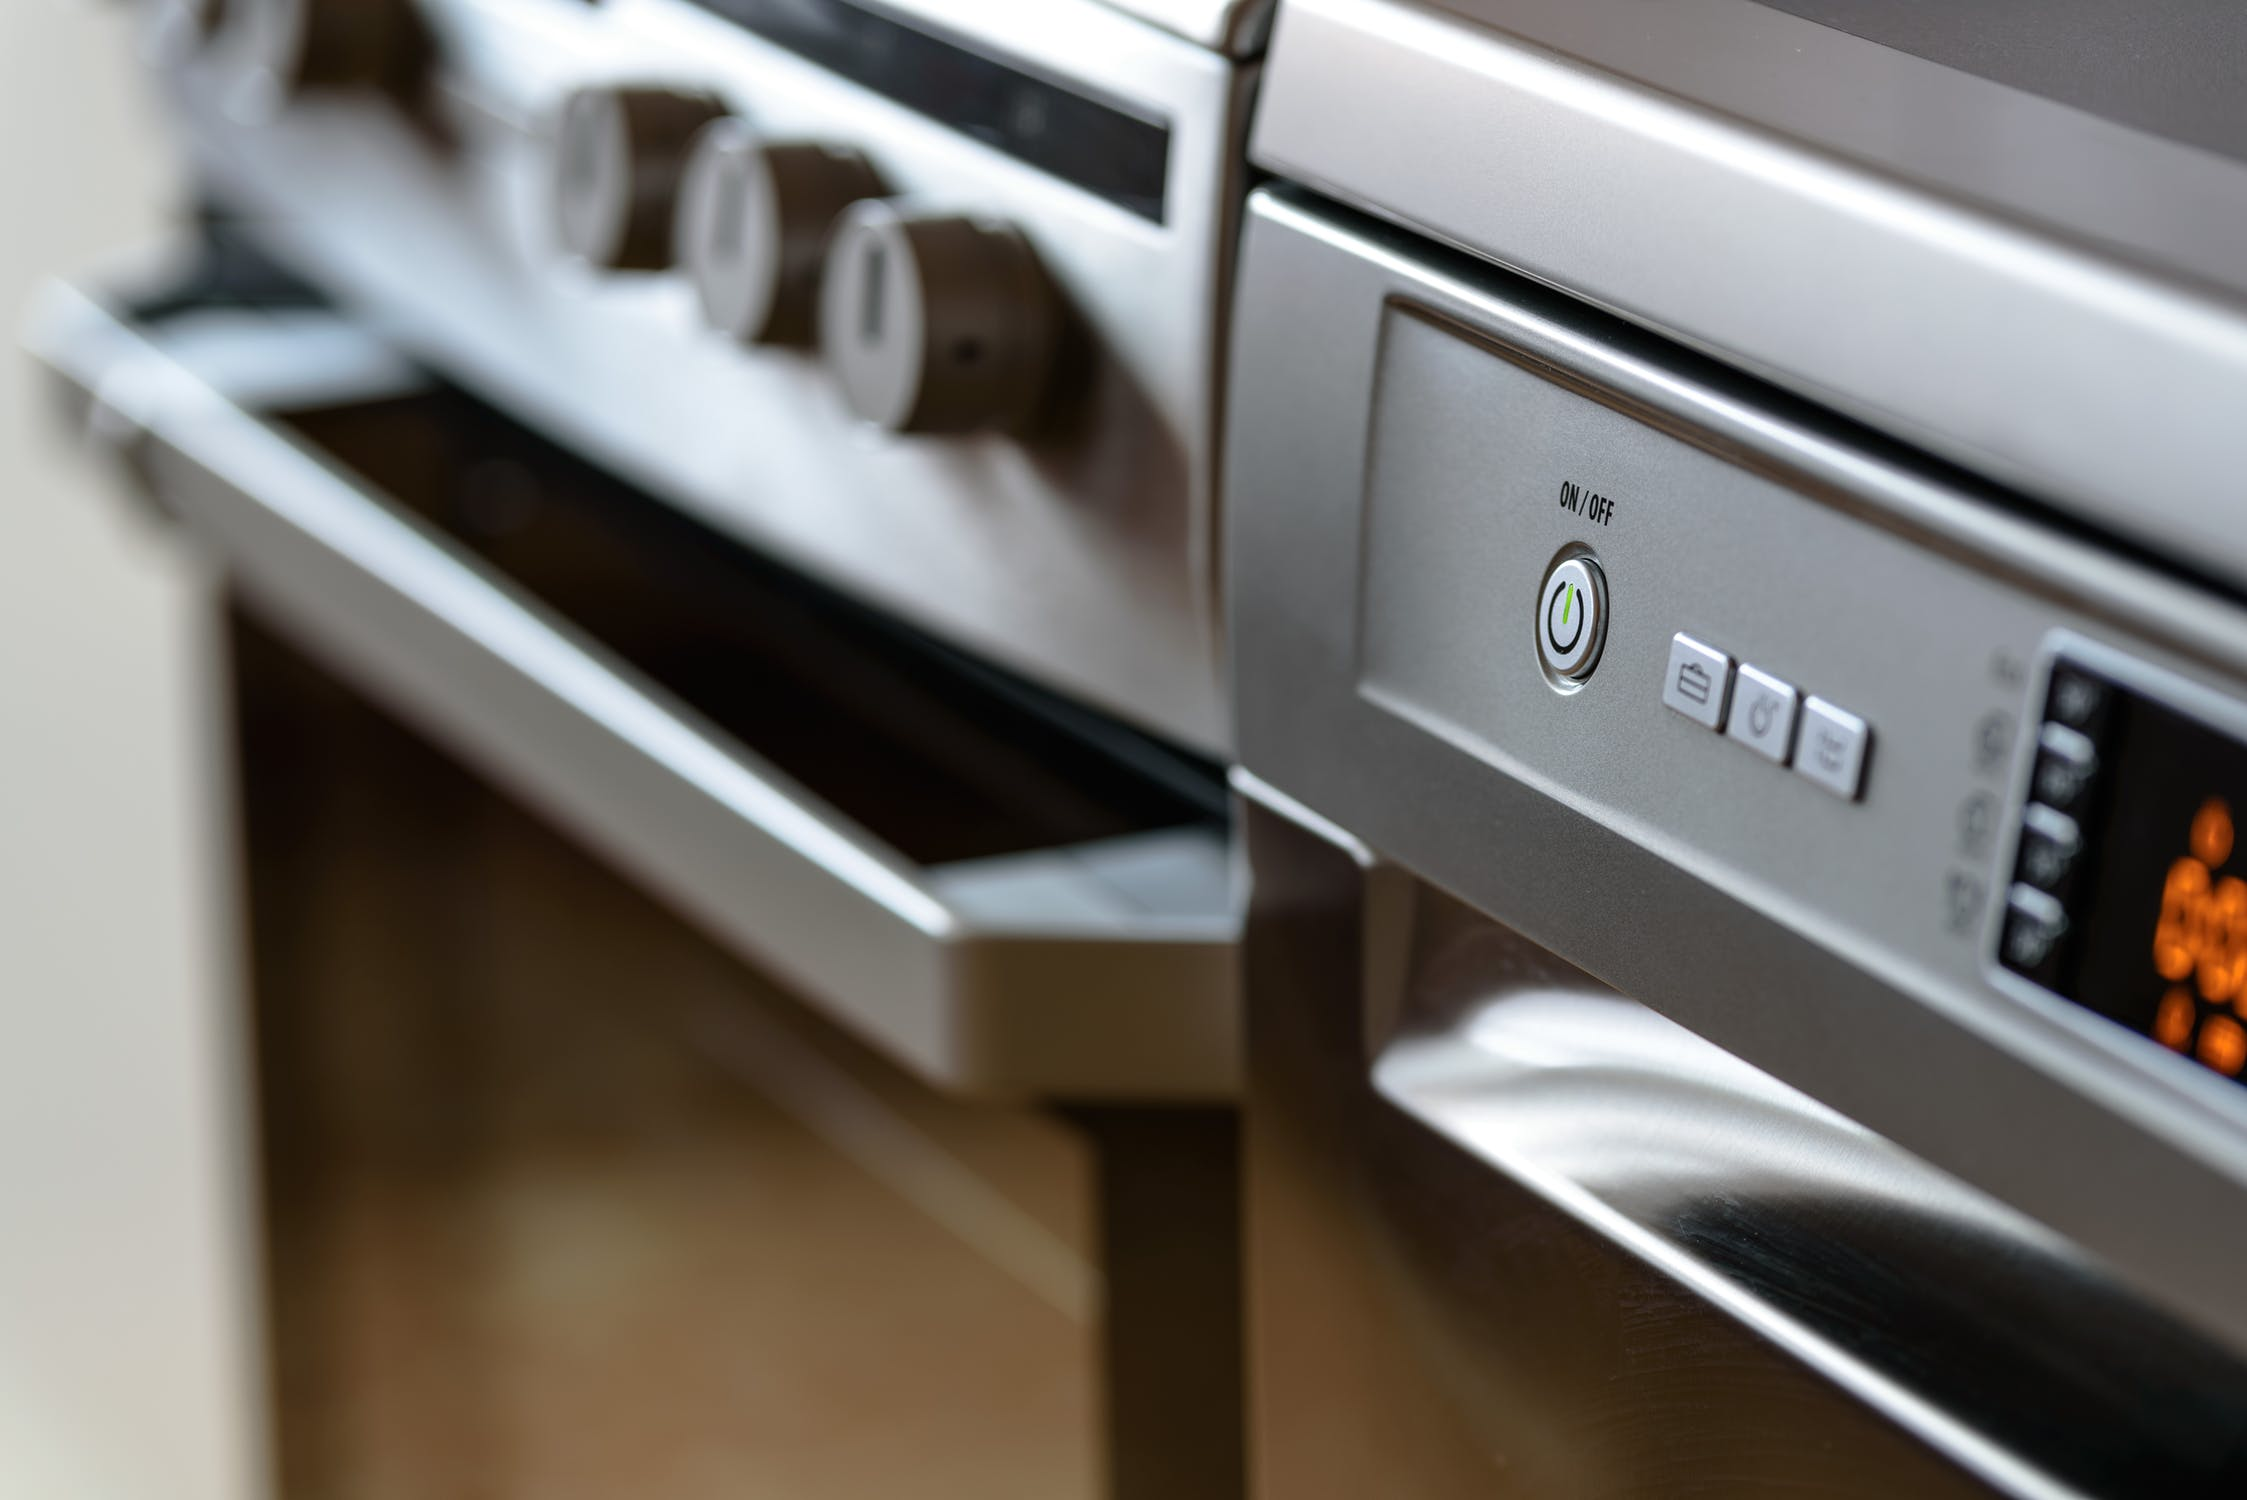 11 Best Dishwashers on The Market (Buying Guide)